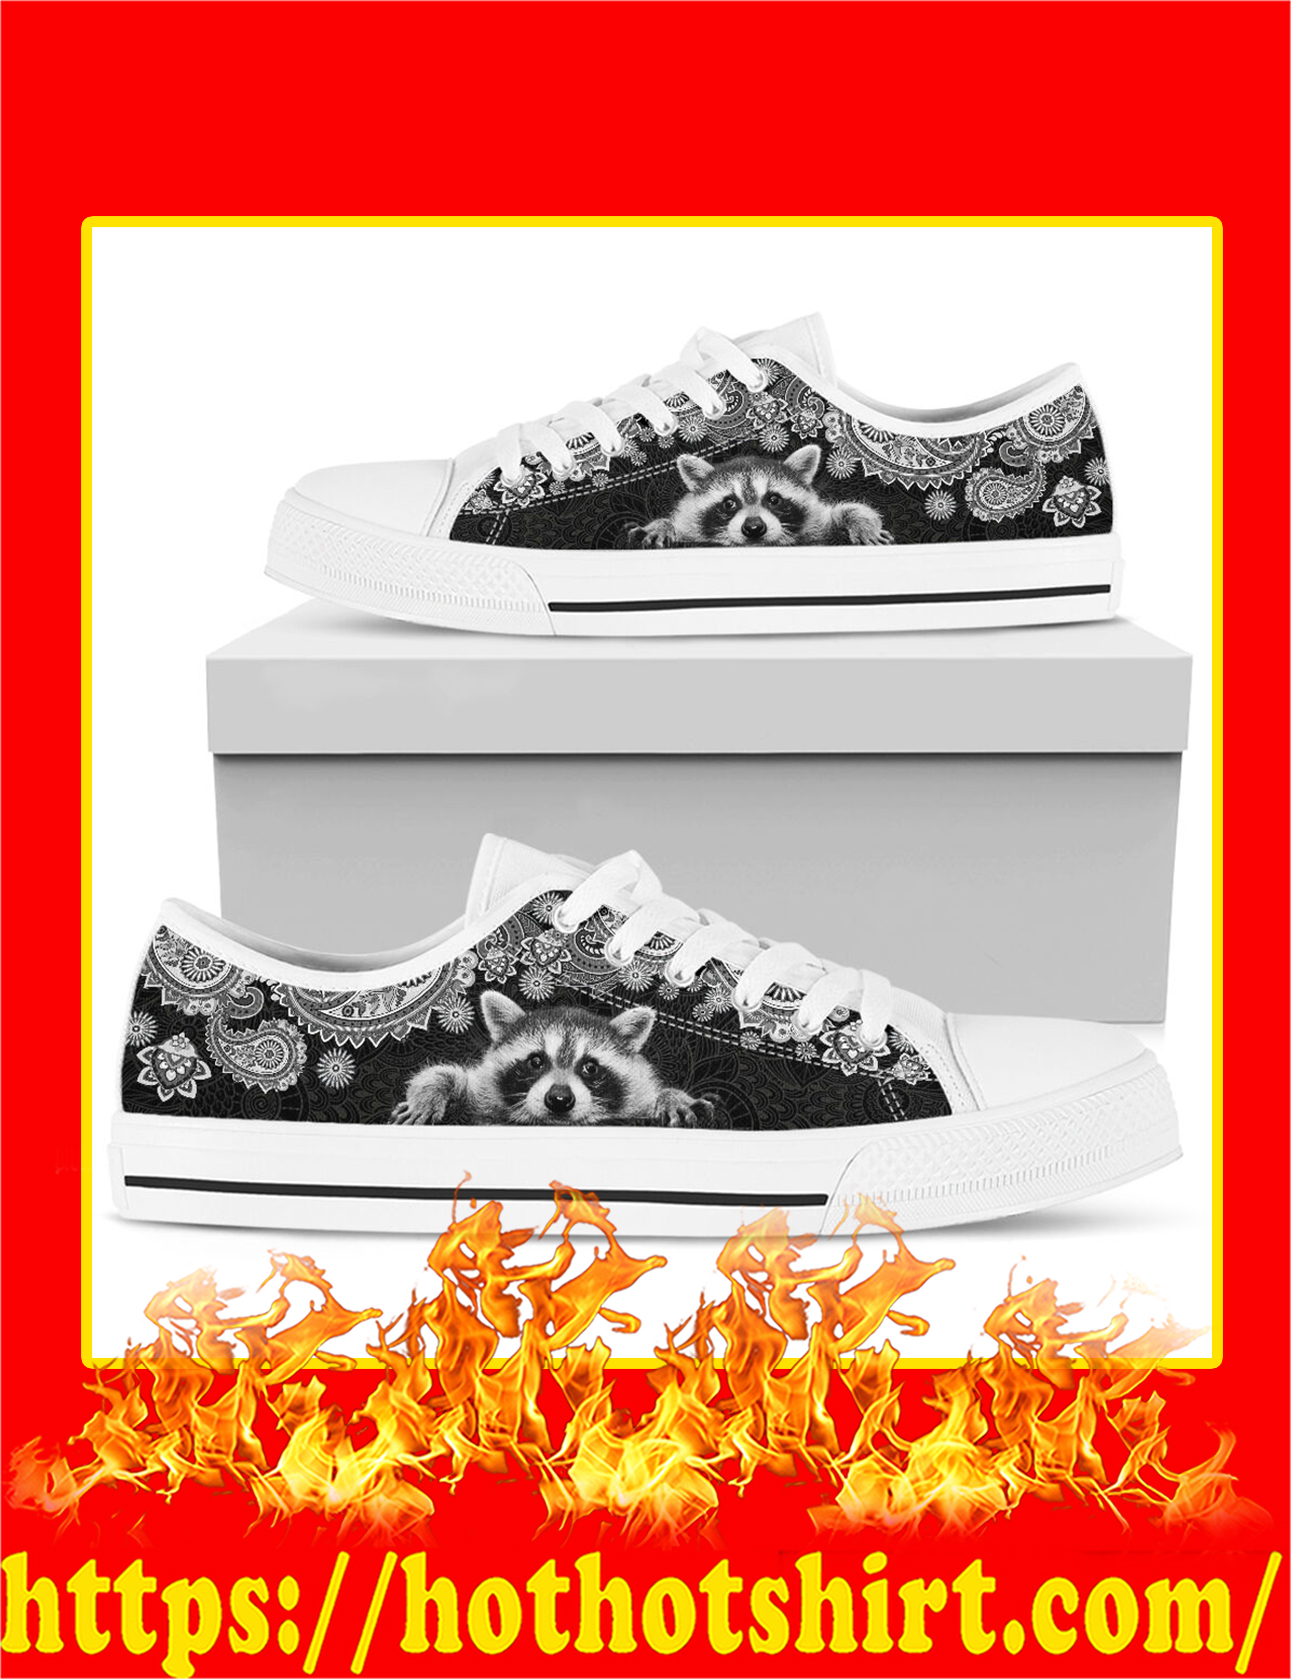 Raccoon Low Top Shoes - Pic 1